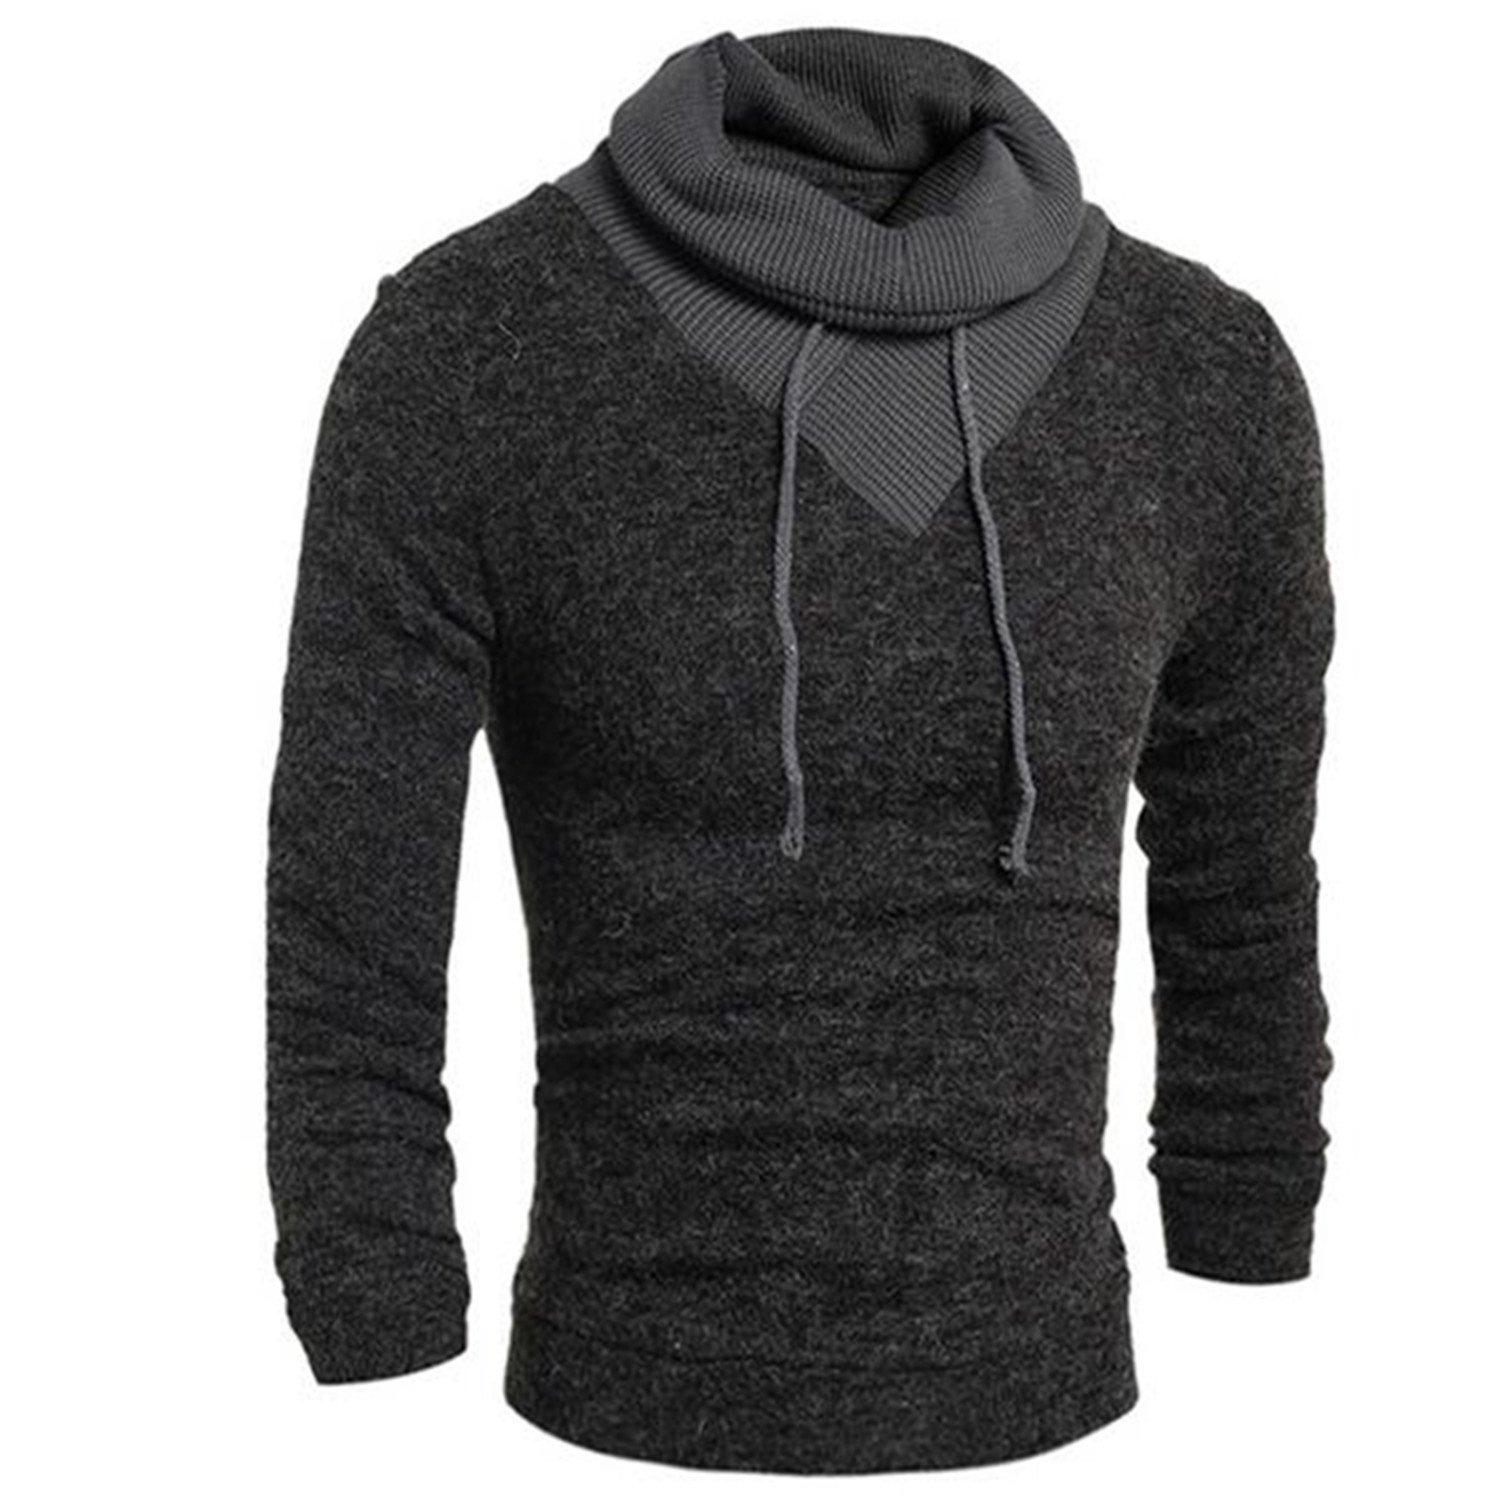 Beautifullight Cool Men Fashion Winter Coats Long Sleeve Hoodie Mens Outer Wear Casual Slim Sweatshirts Turtleneck Mens at Amazon Mens Clothing store: